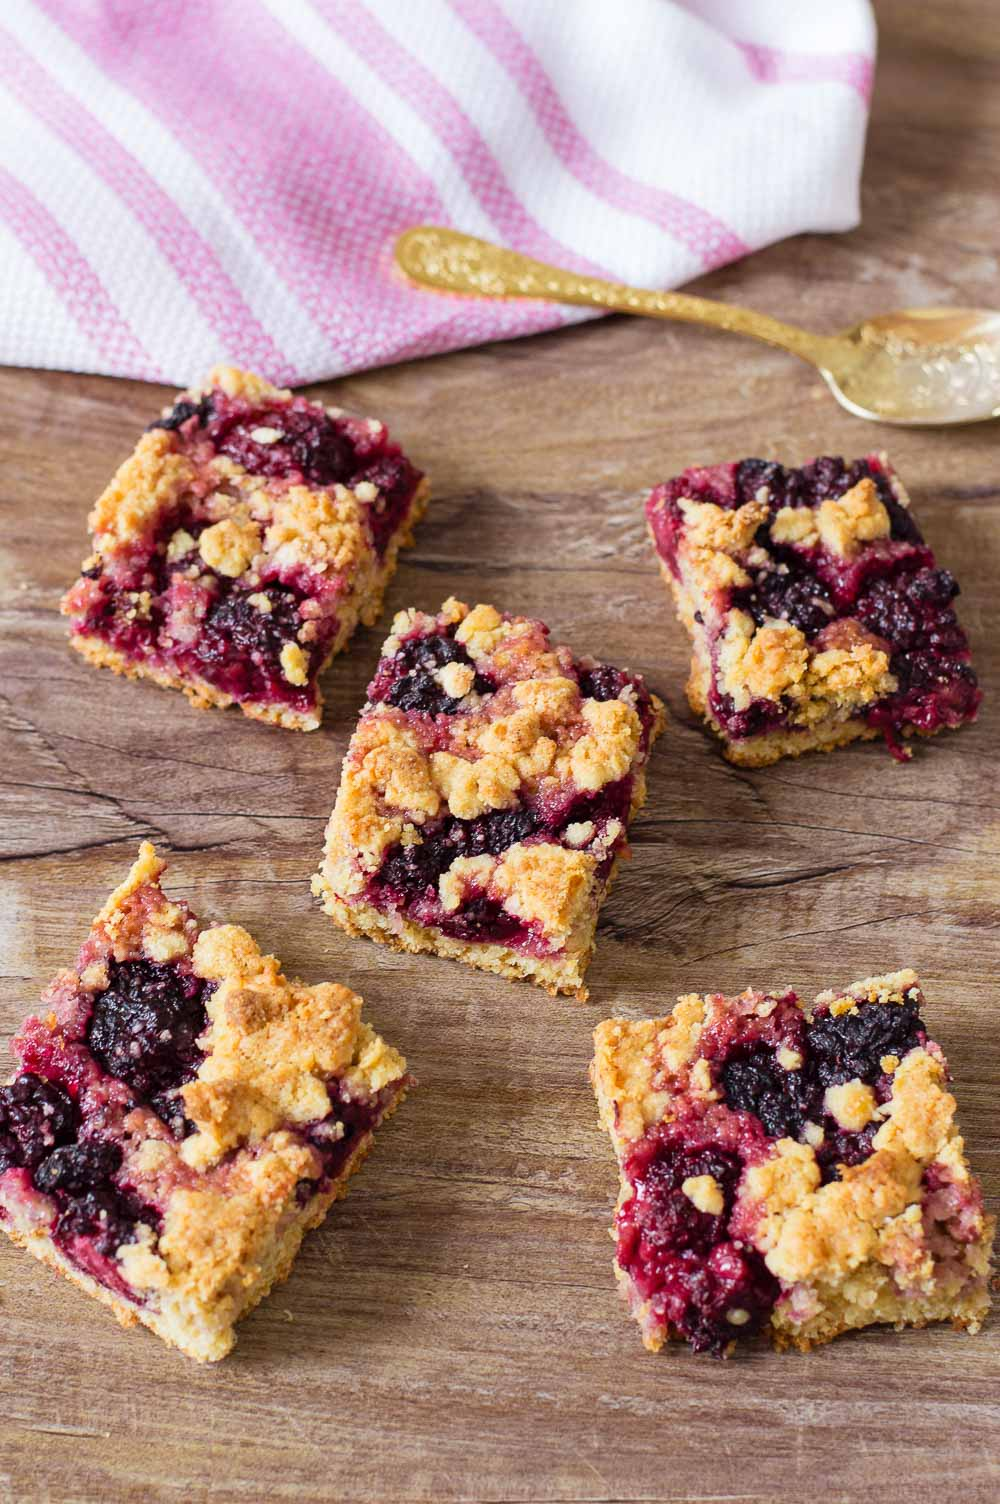 Easy Blackberry Crumb Bars. These blackberry crumb bars are a favorite for the summertime. They are filled with fresh blackberries and topped with crumbly crumbs. So easy to make and perfect for your next gathering or party.